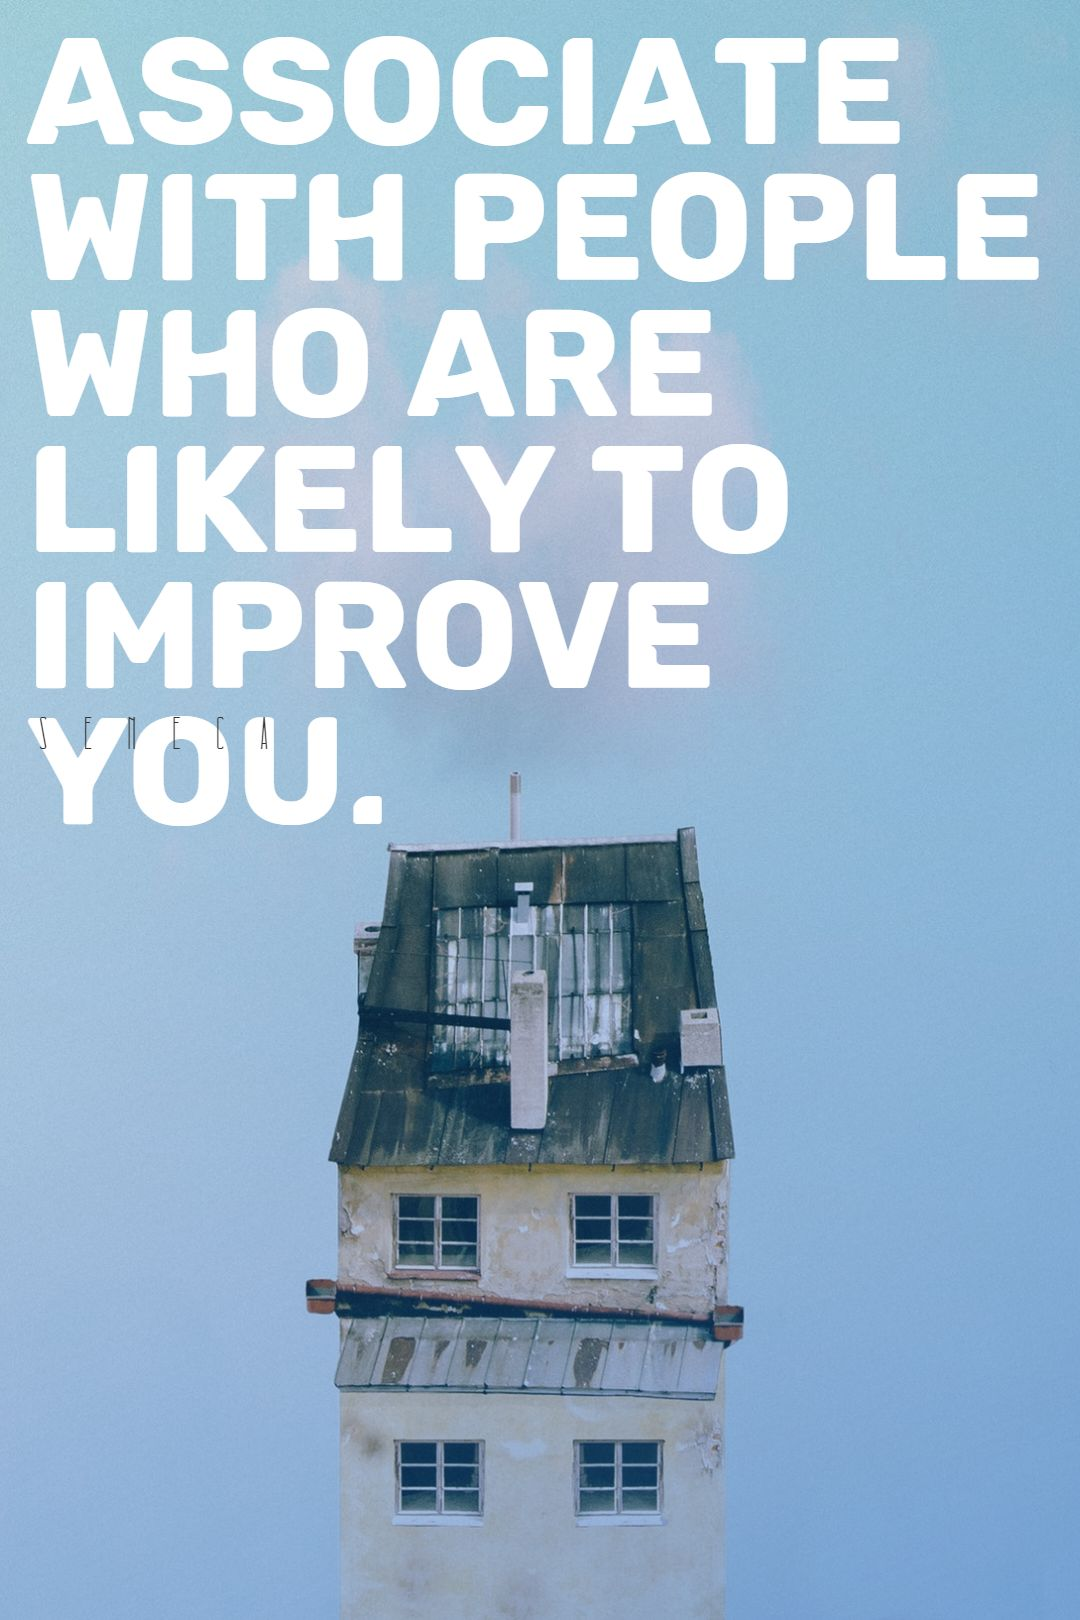 Quotes image of Associate with people who are likely to improve you.